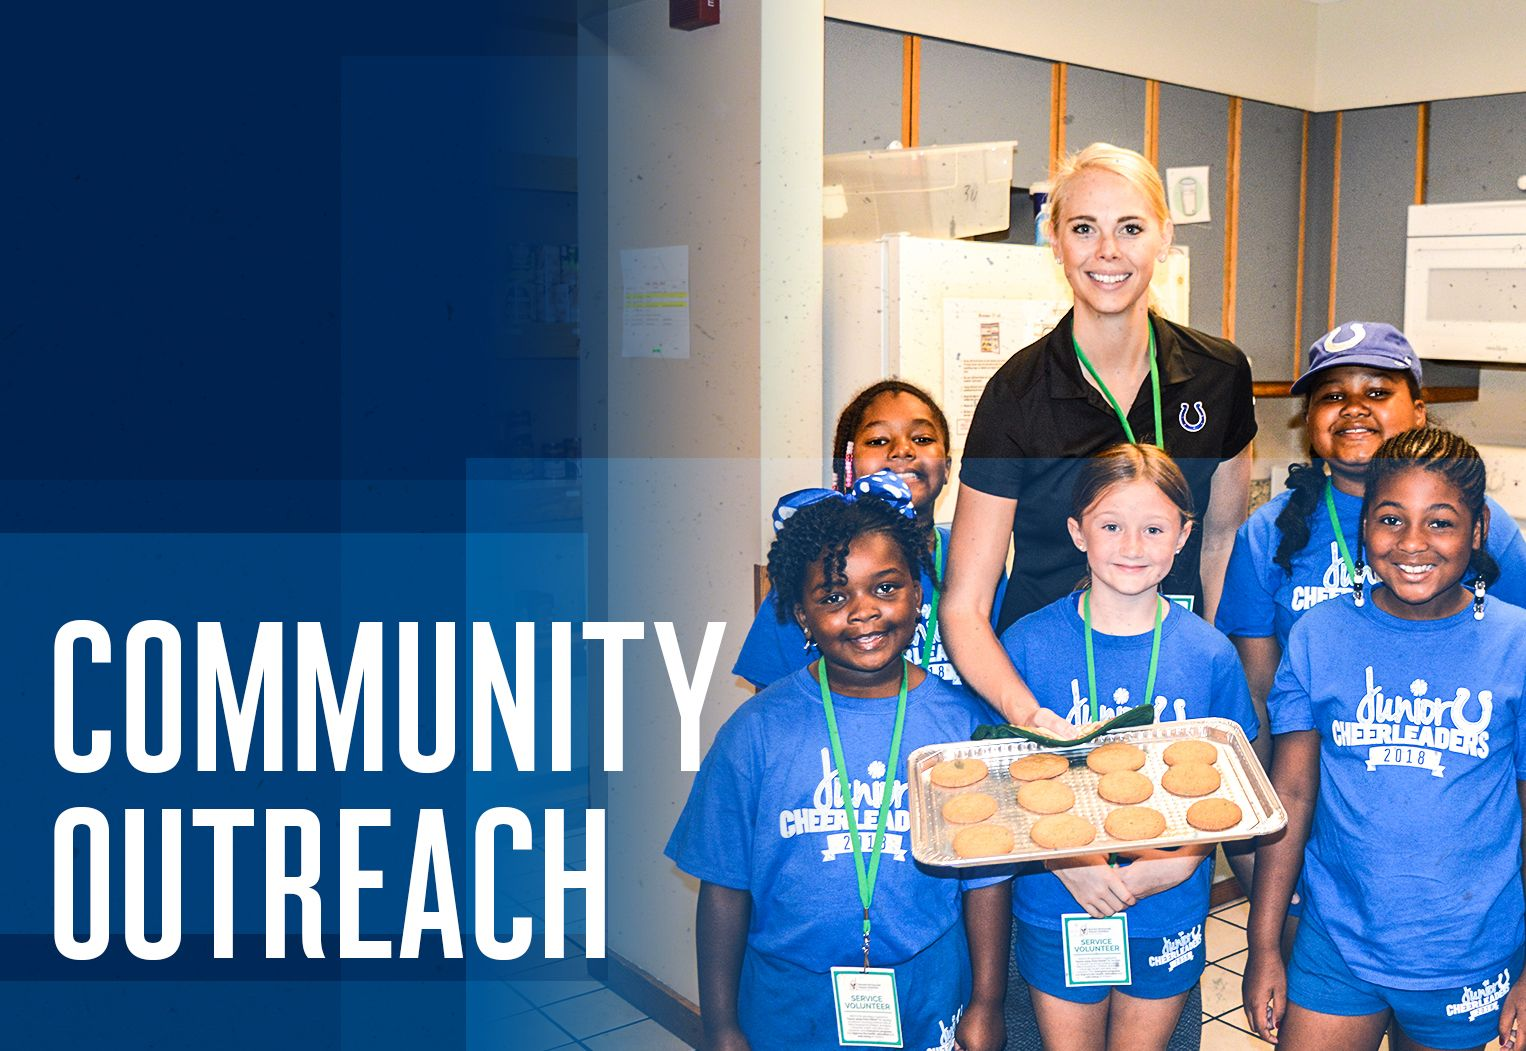 Colts Junior Cheer Community Outreach